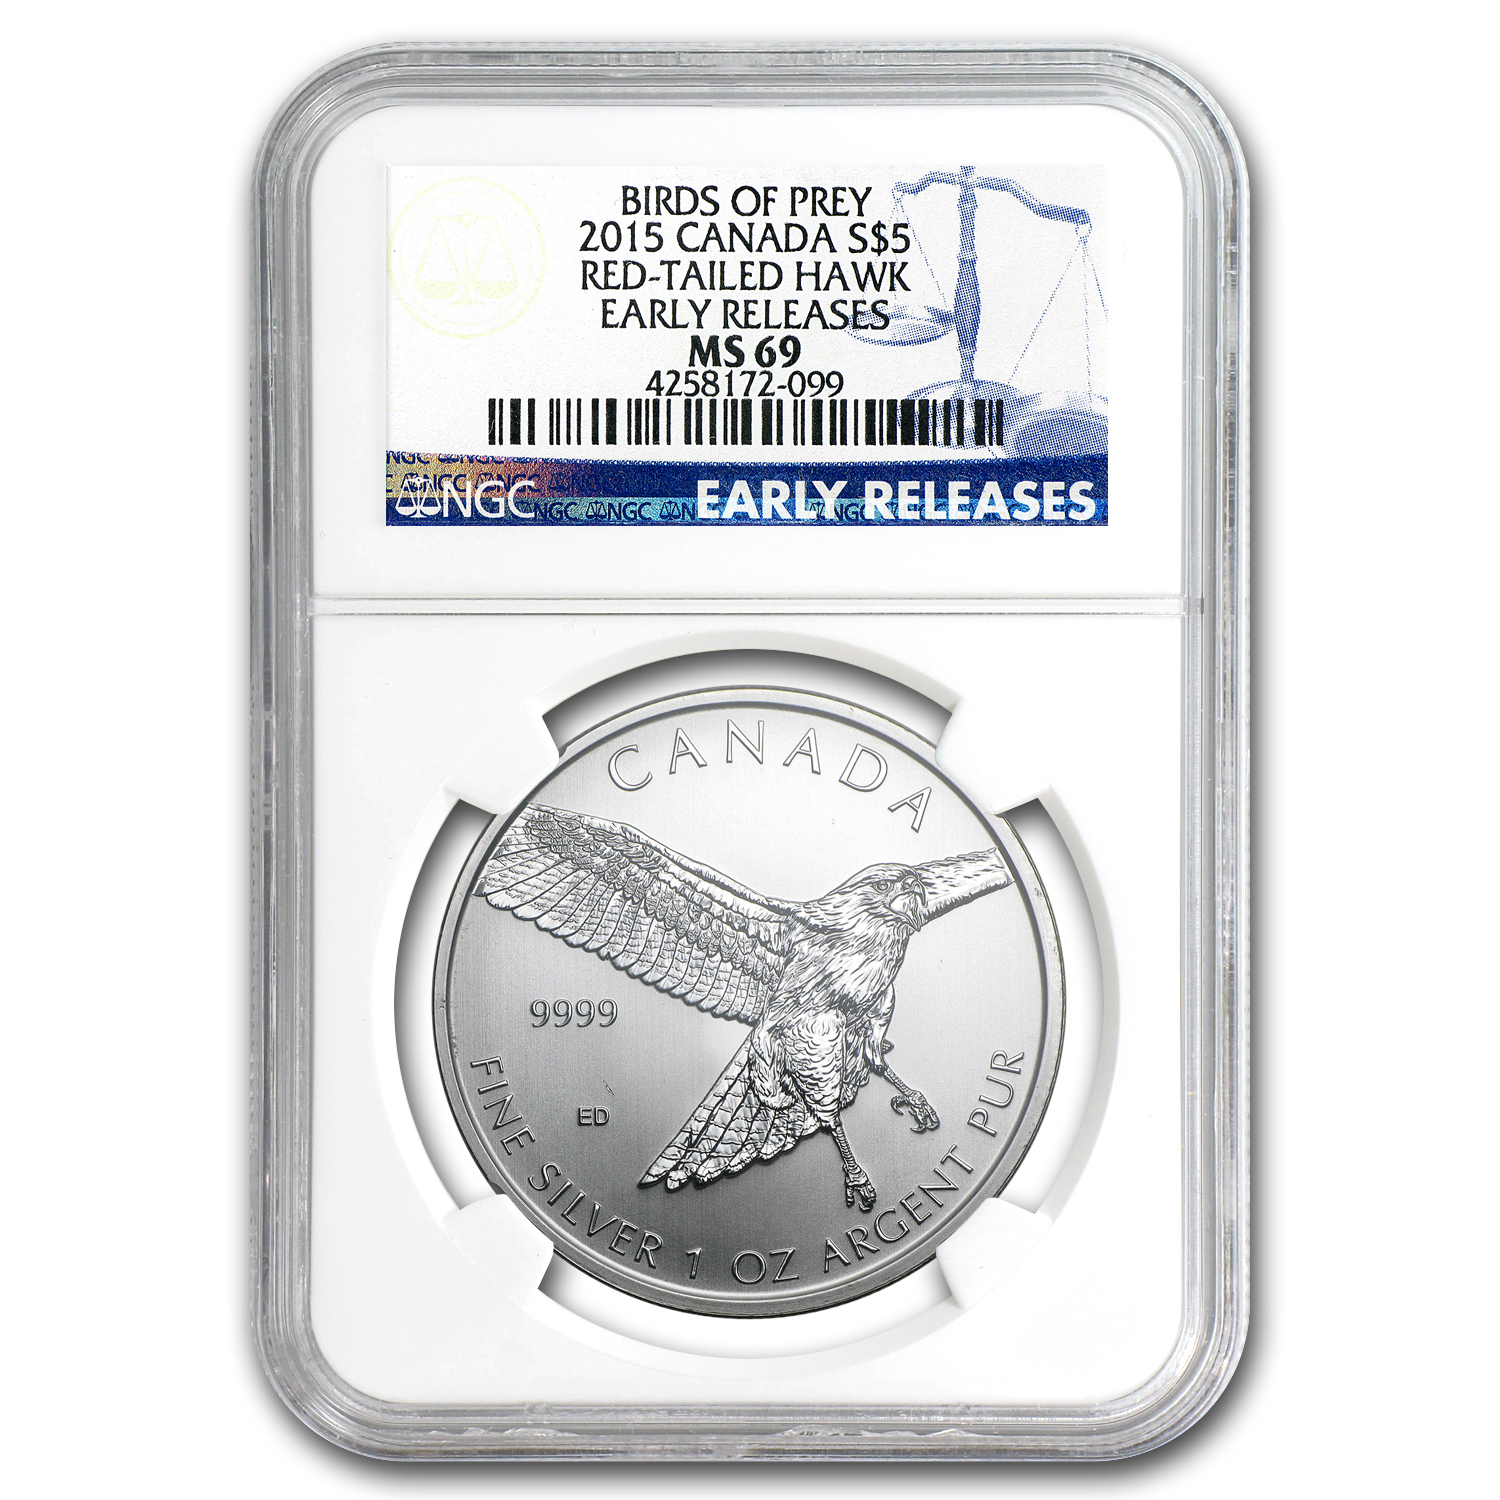 2015 RCM 1 oz Silver Birds of Prey Red Tailed Hawk MS-69 NGC